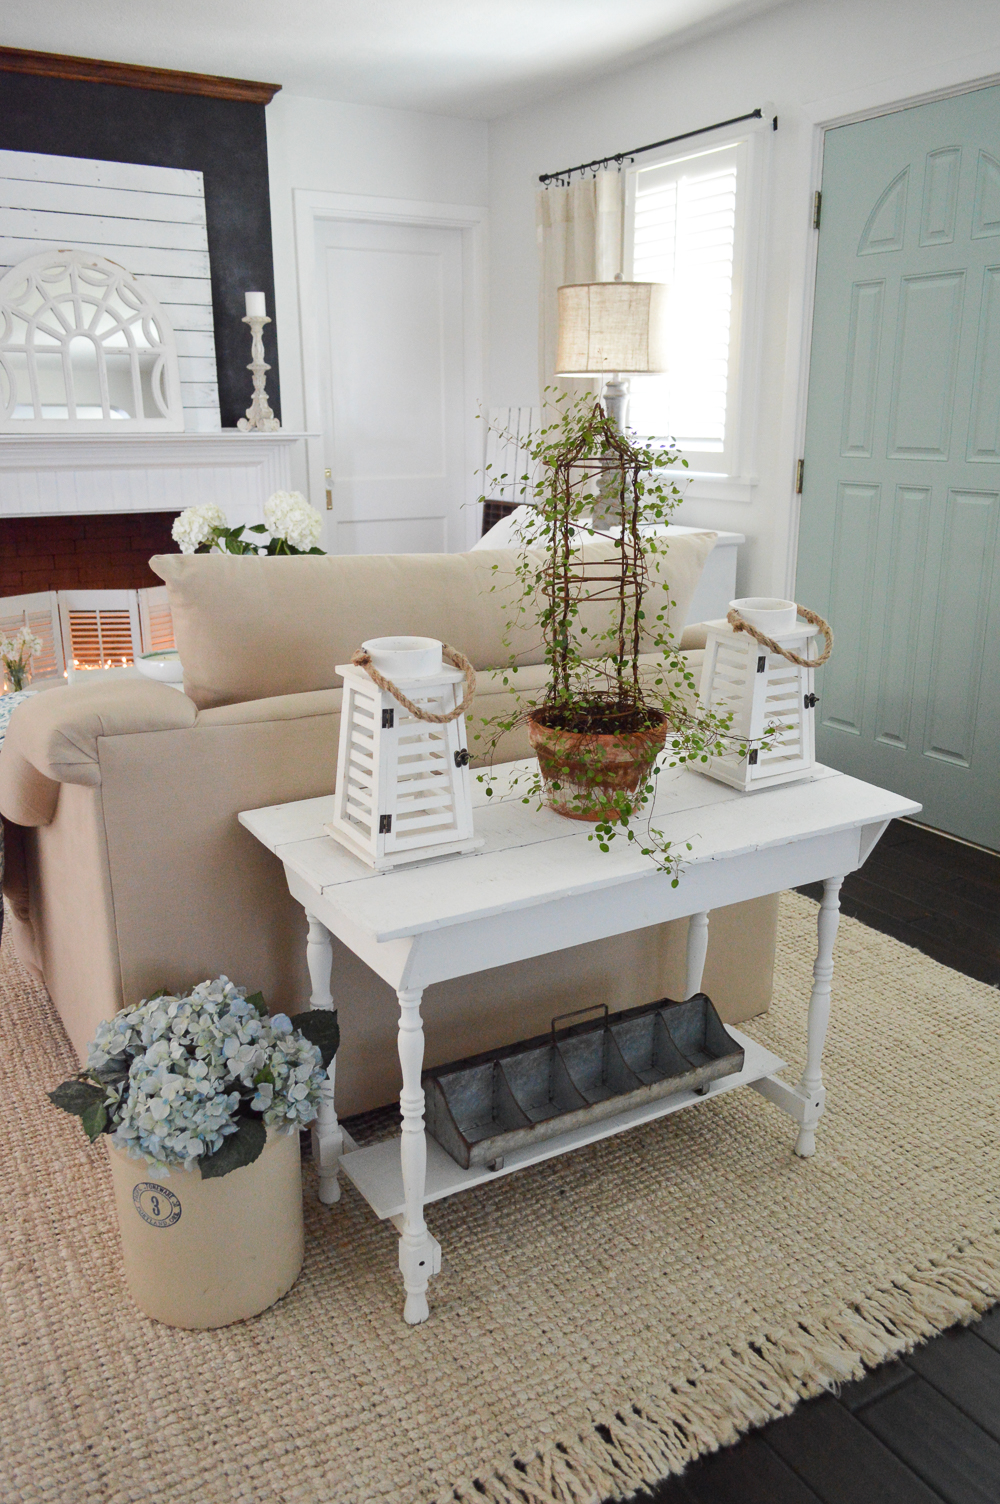 Fox Hollow Cottage - find eclectic, coastal cottage farmhouse style home decorating ideas that are easy and affordable!